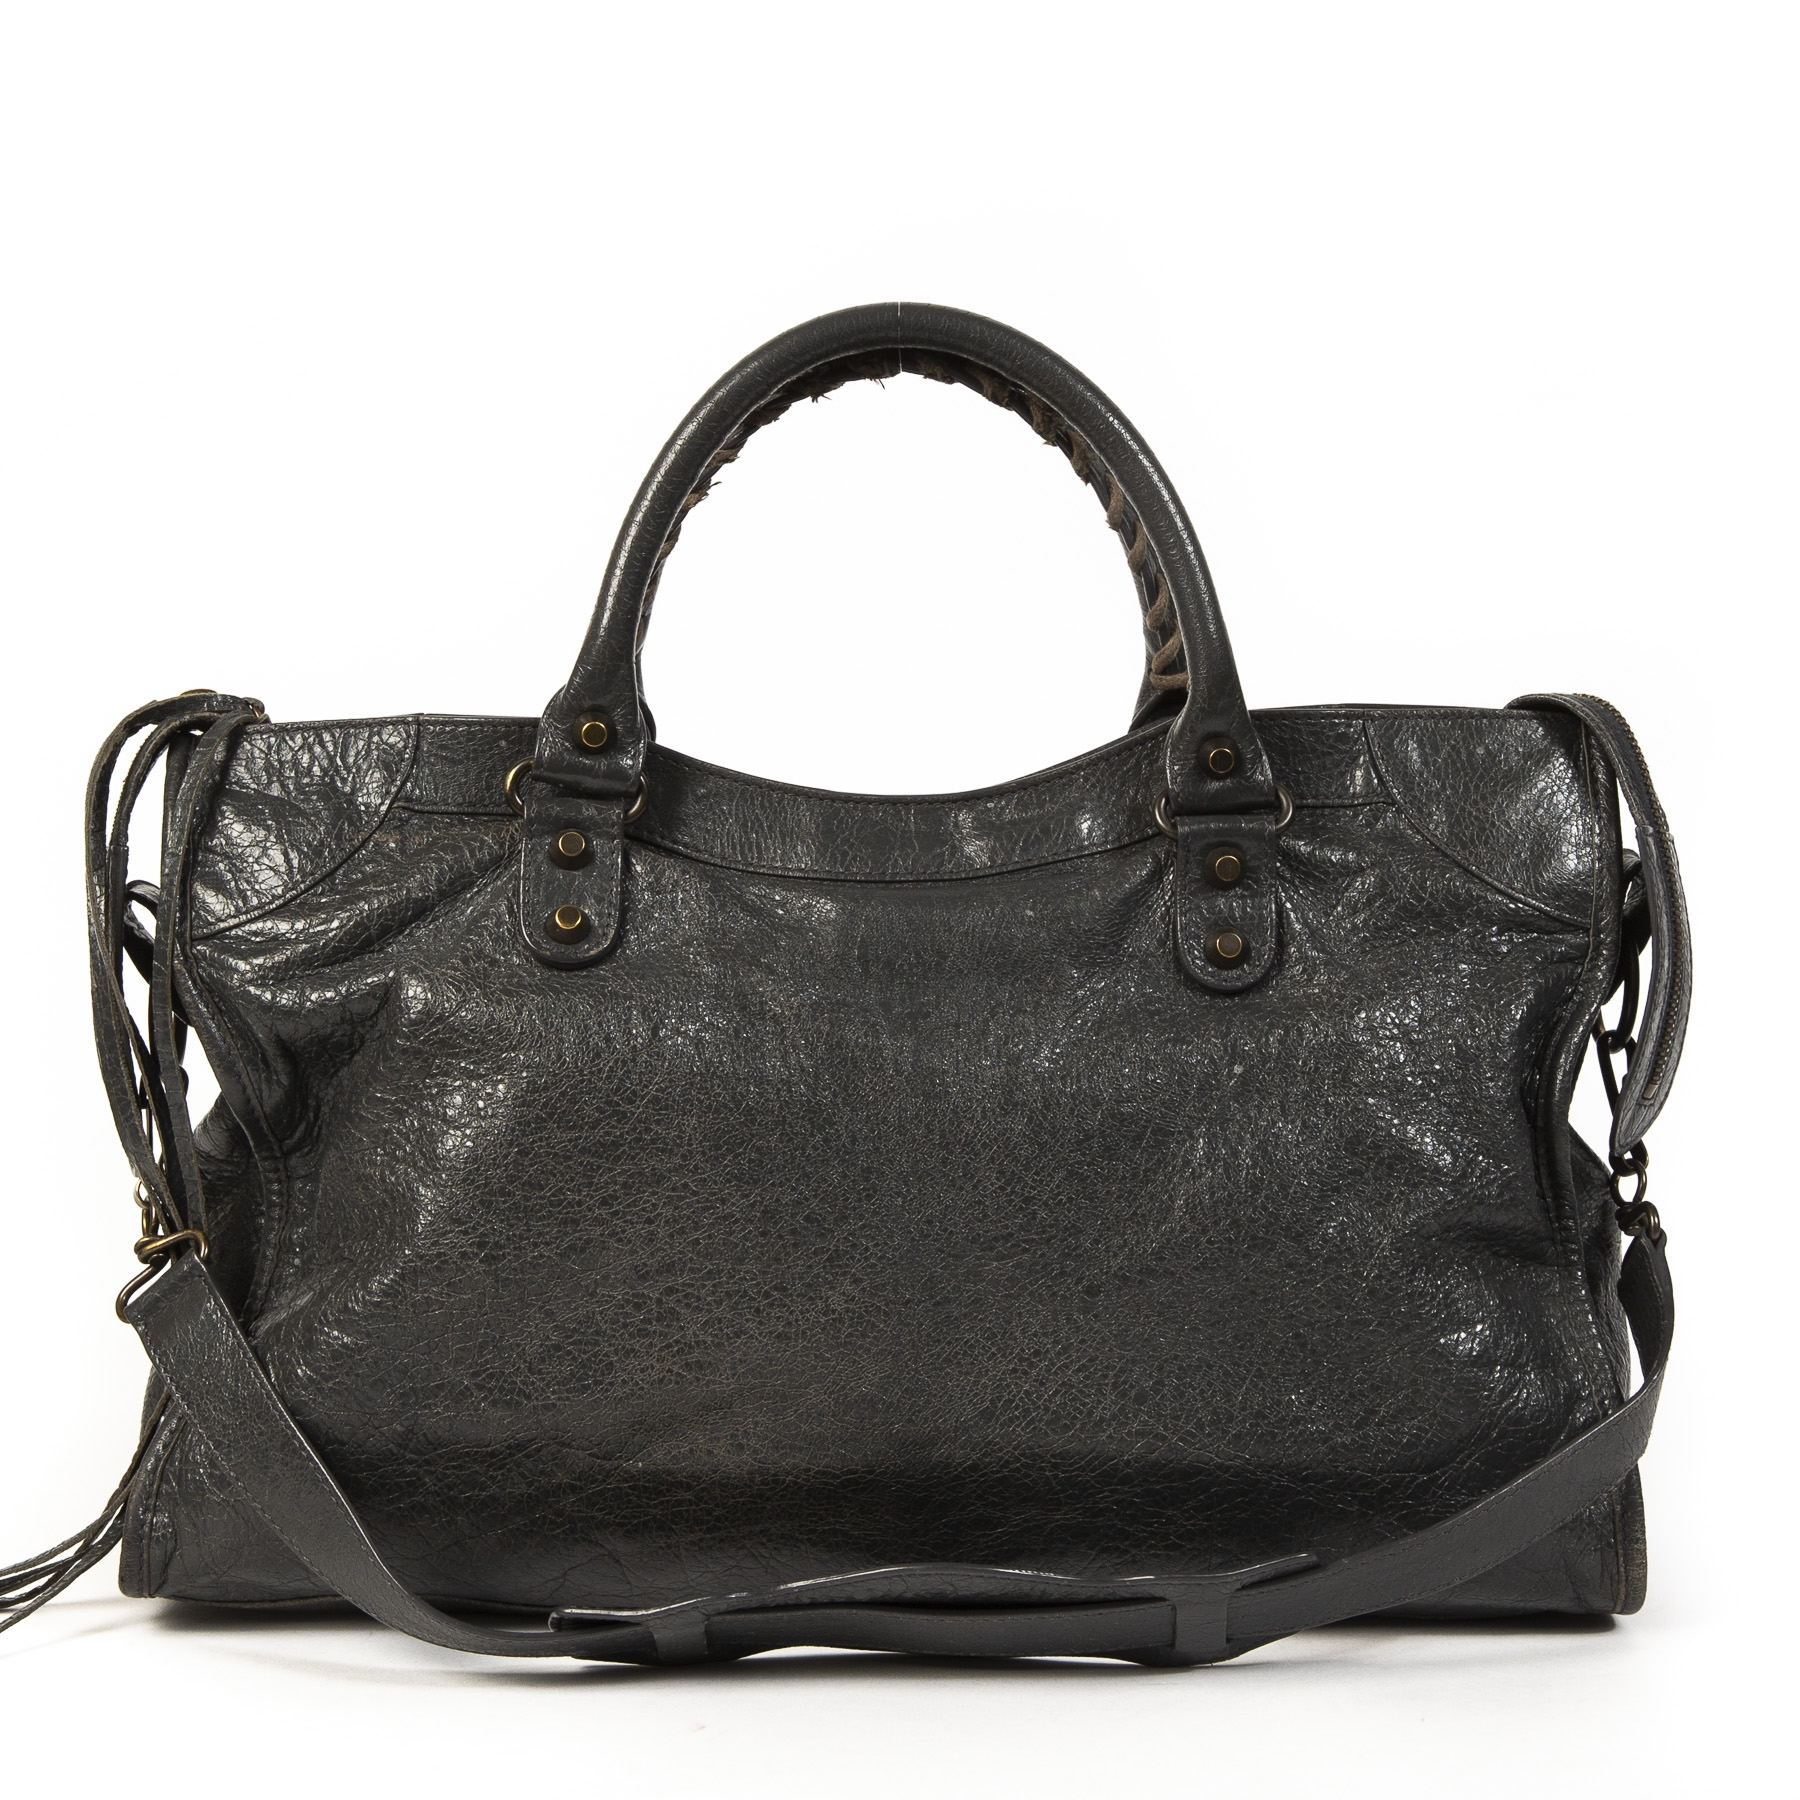 Balenciaga Anthracite Grey City Bag RHW te koop online bij Labellov tweedehands luxe